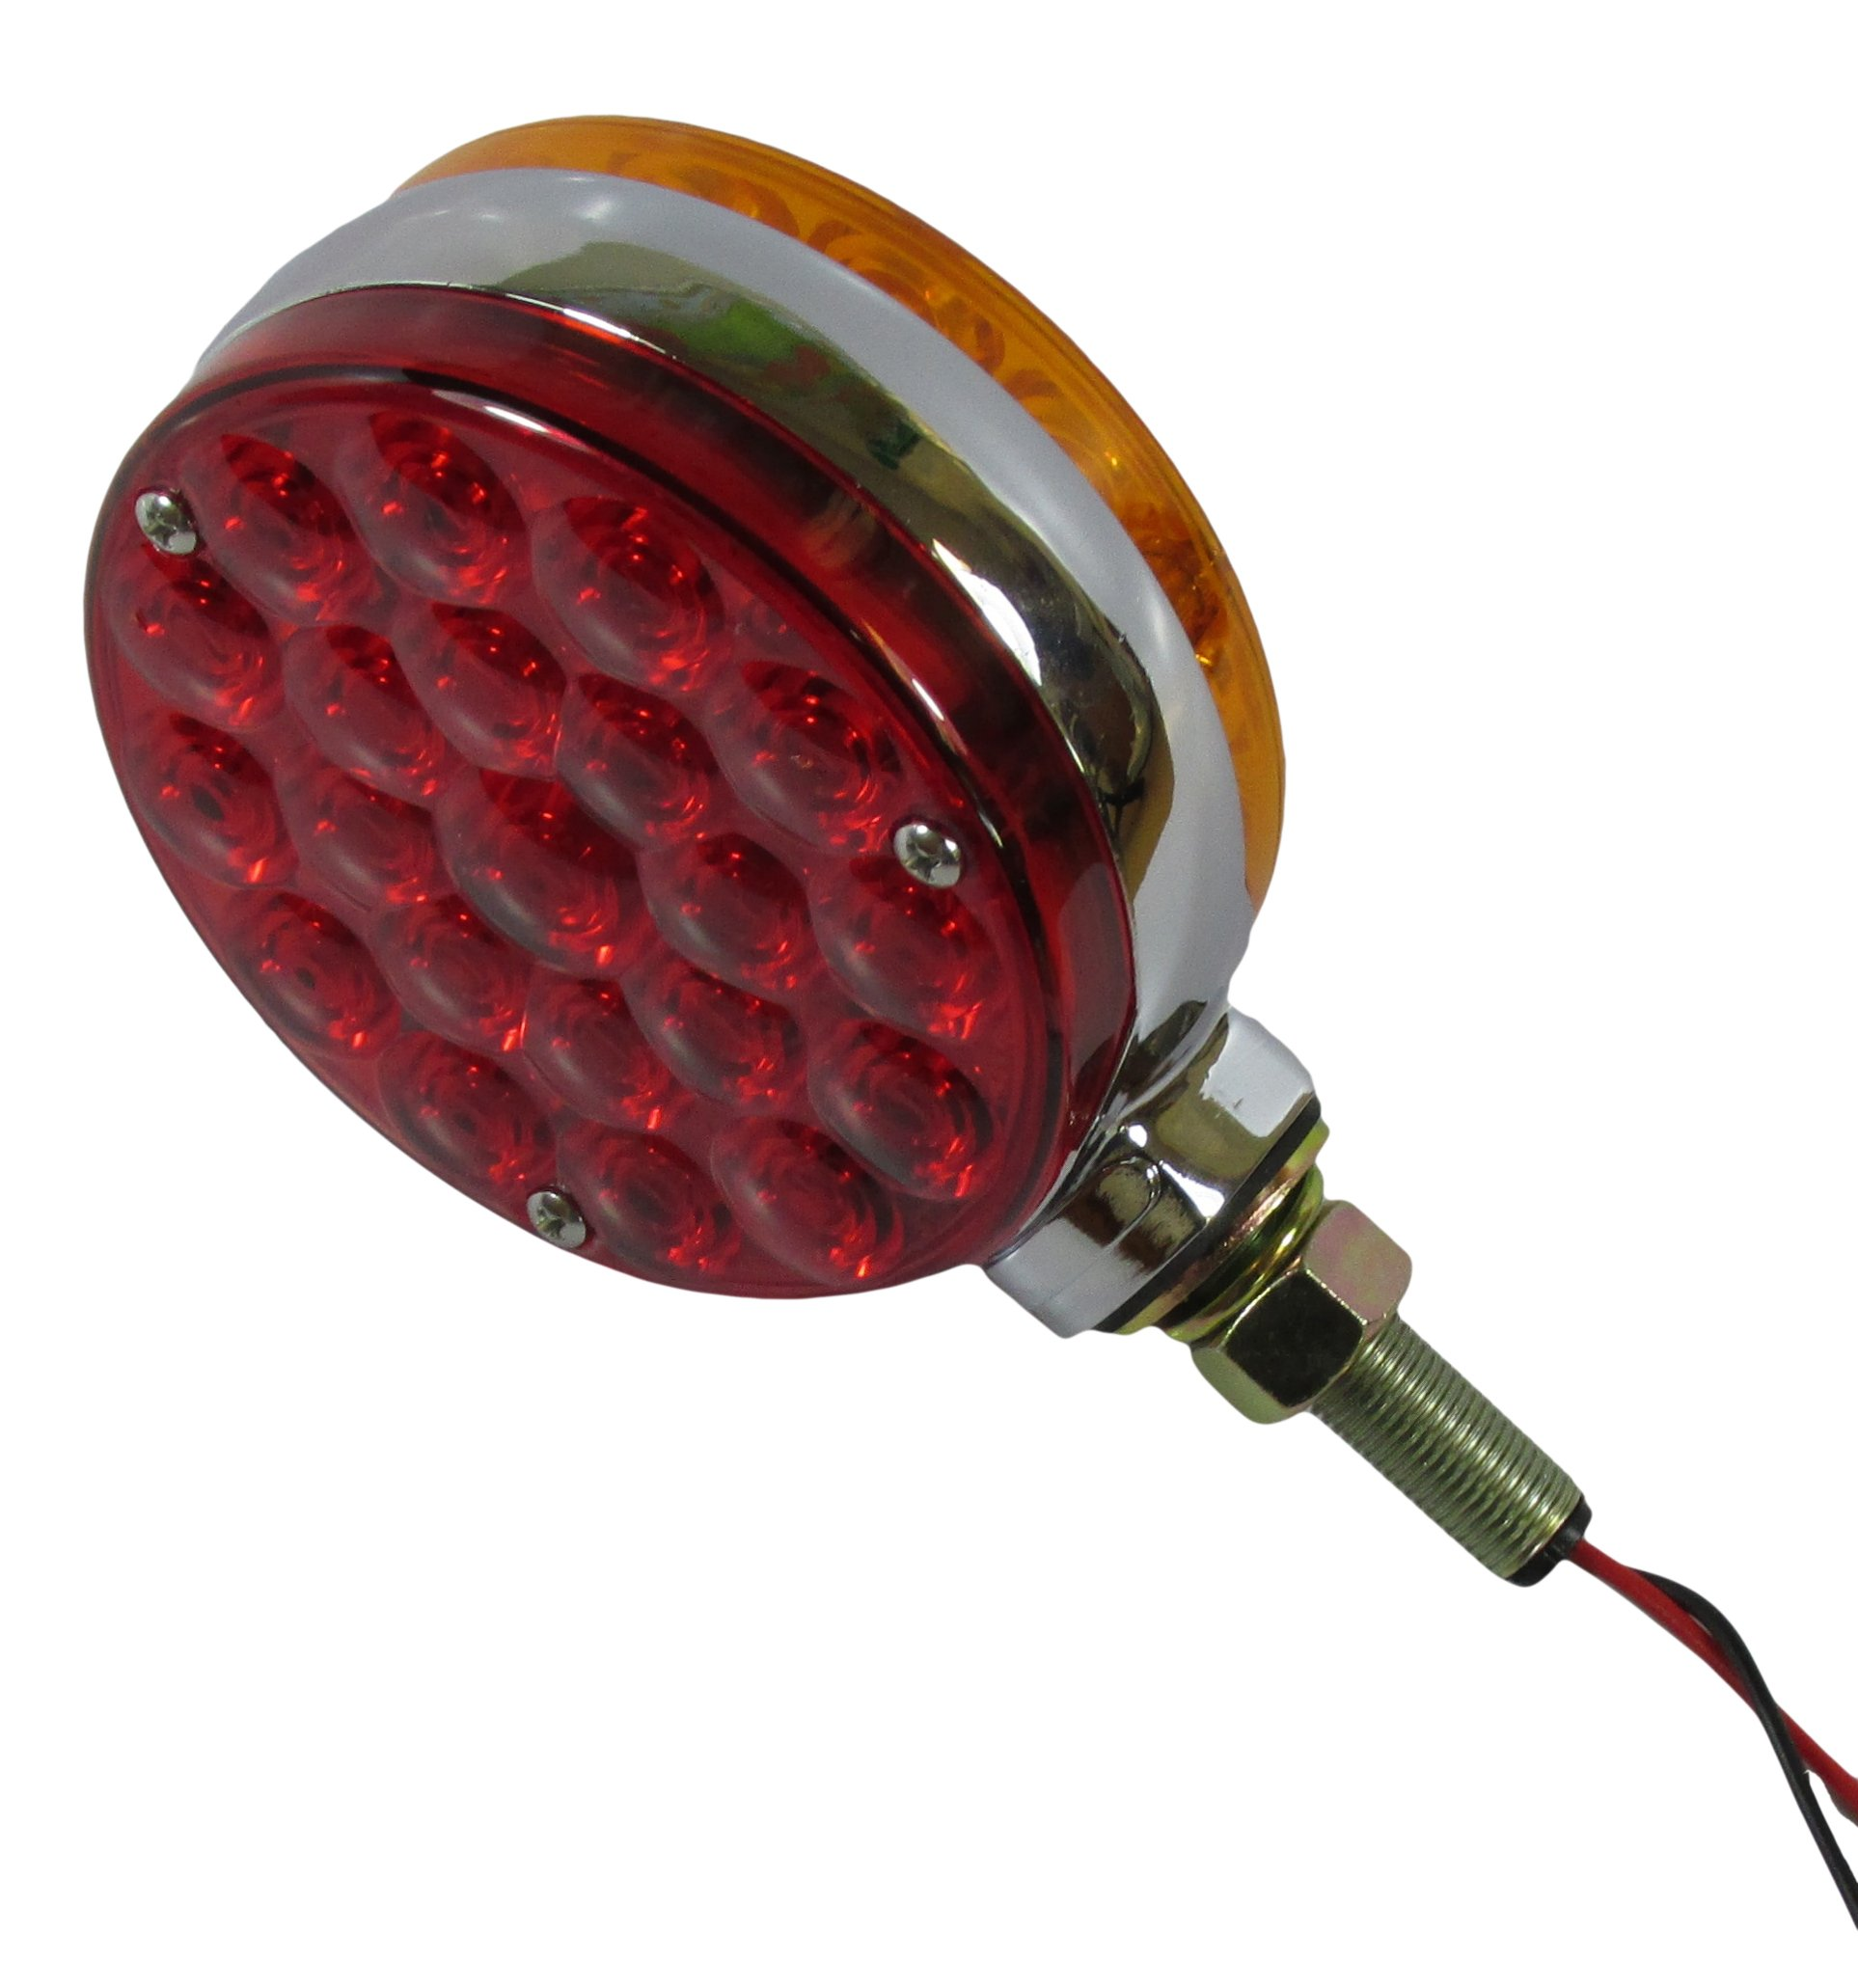 Kaper II Fender/Turn Light 4'' round, 2-sided, amber/red; 21 diode each side, pedestal mountconnection:3 bare wirespecial:double-face lollipop tested voltage:12.8 Volts.